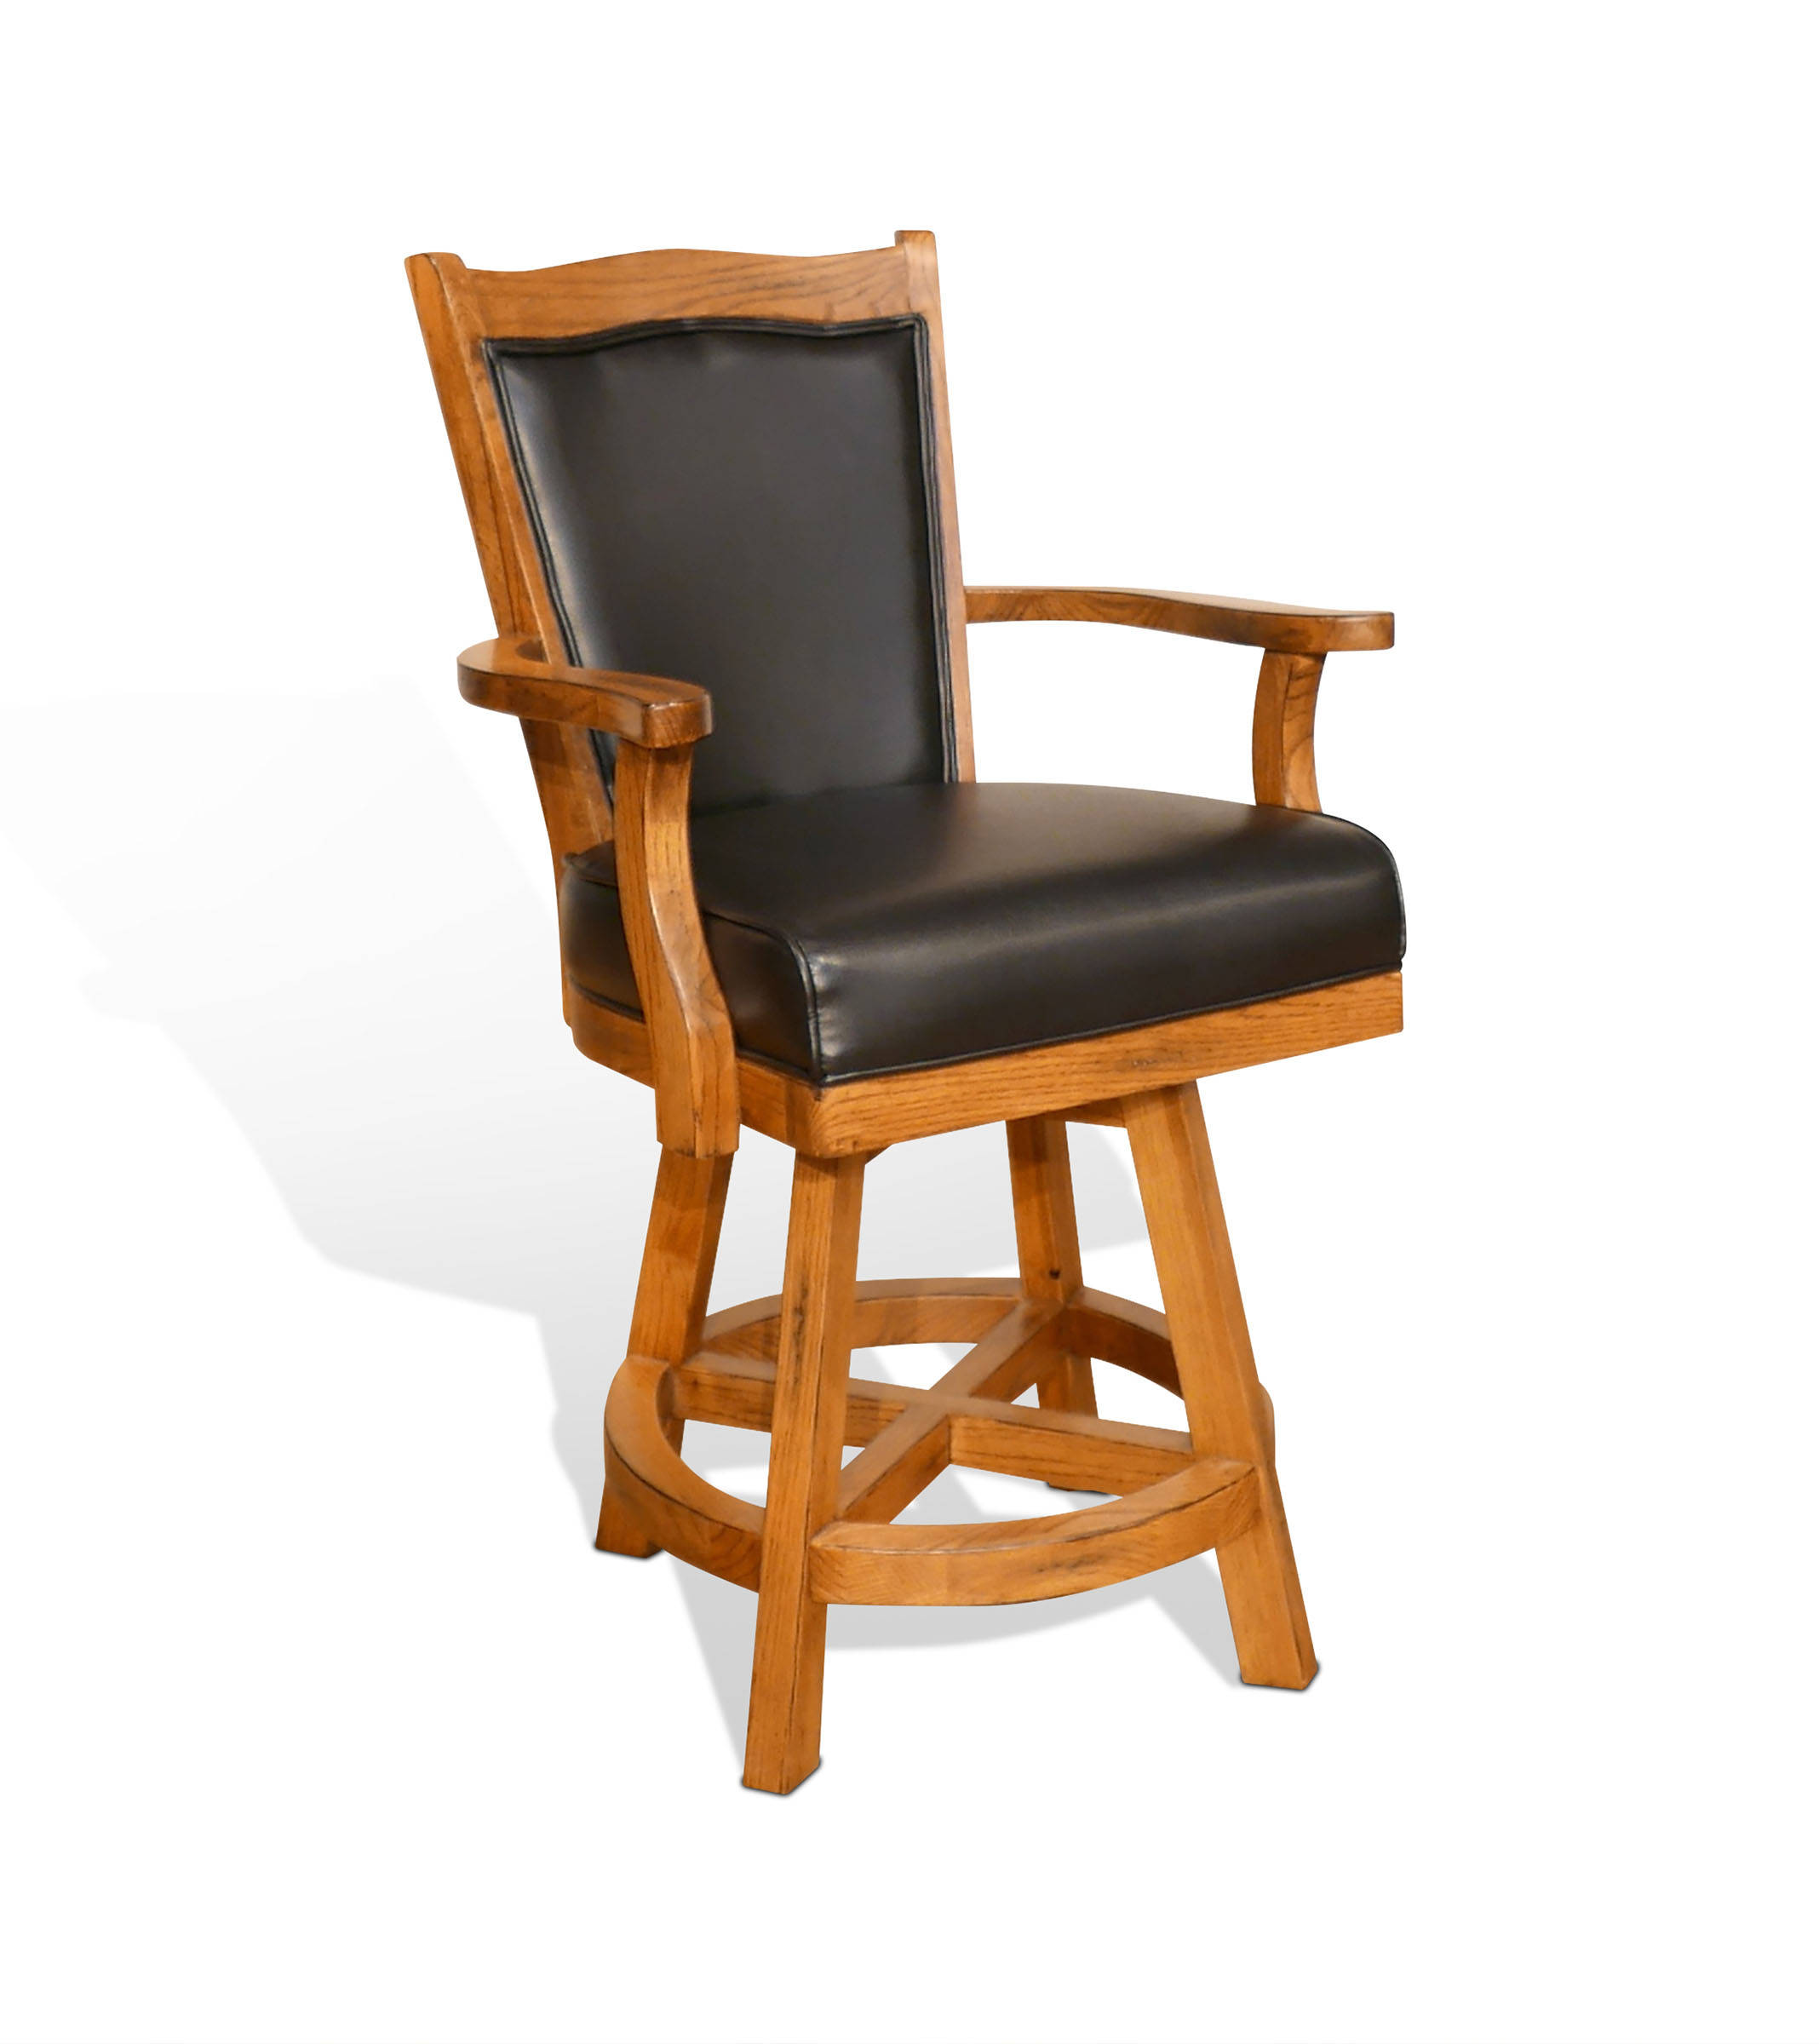 Sunny Designs Sedona Rustic Oak Cushion Back Barstool